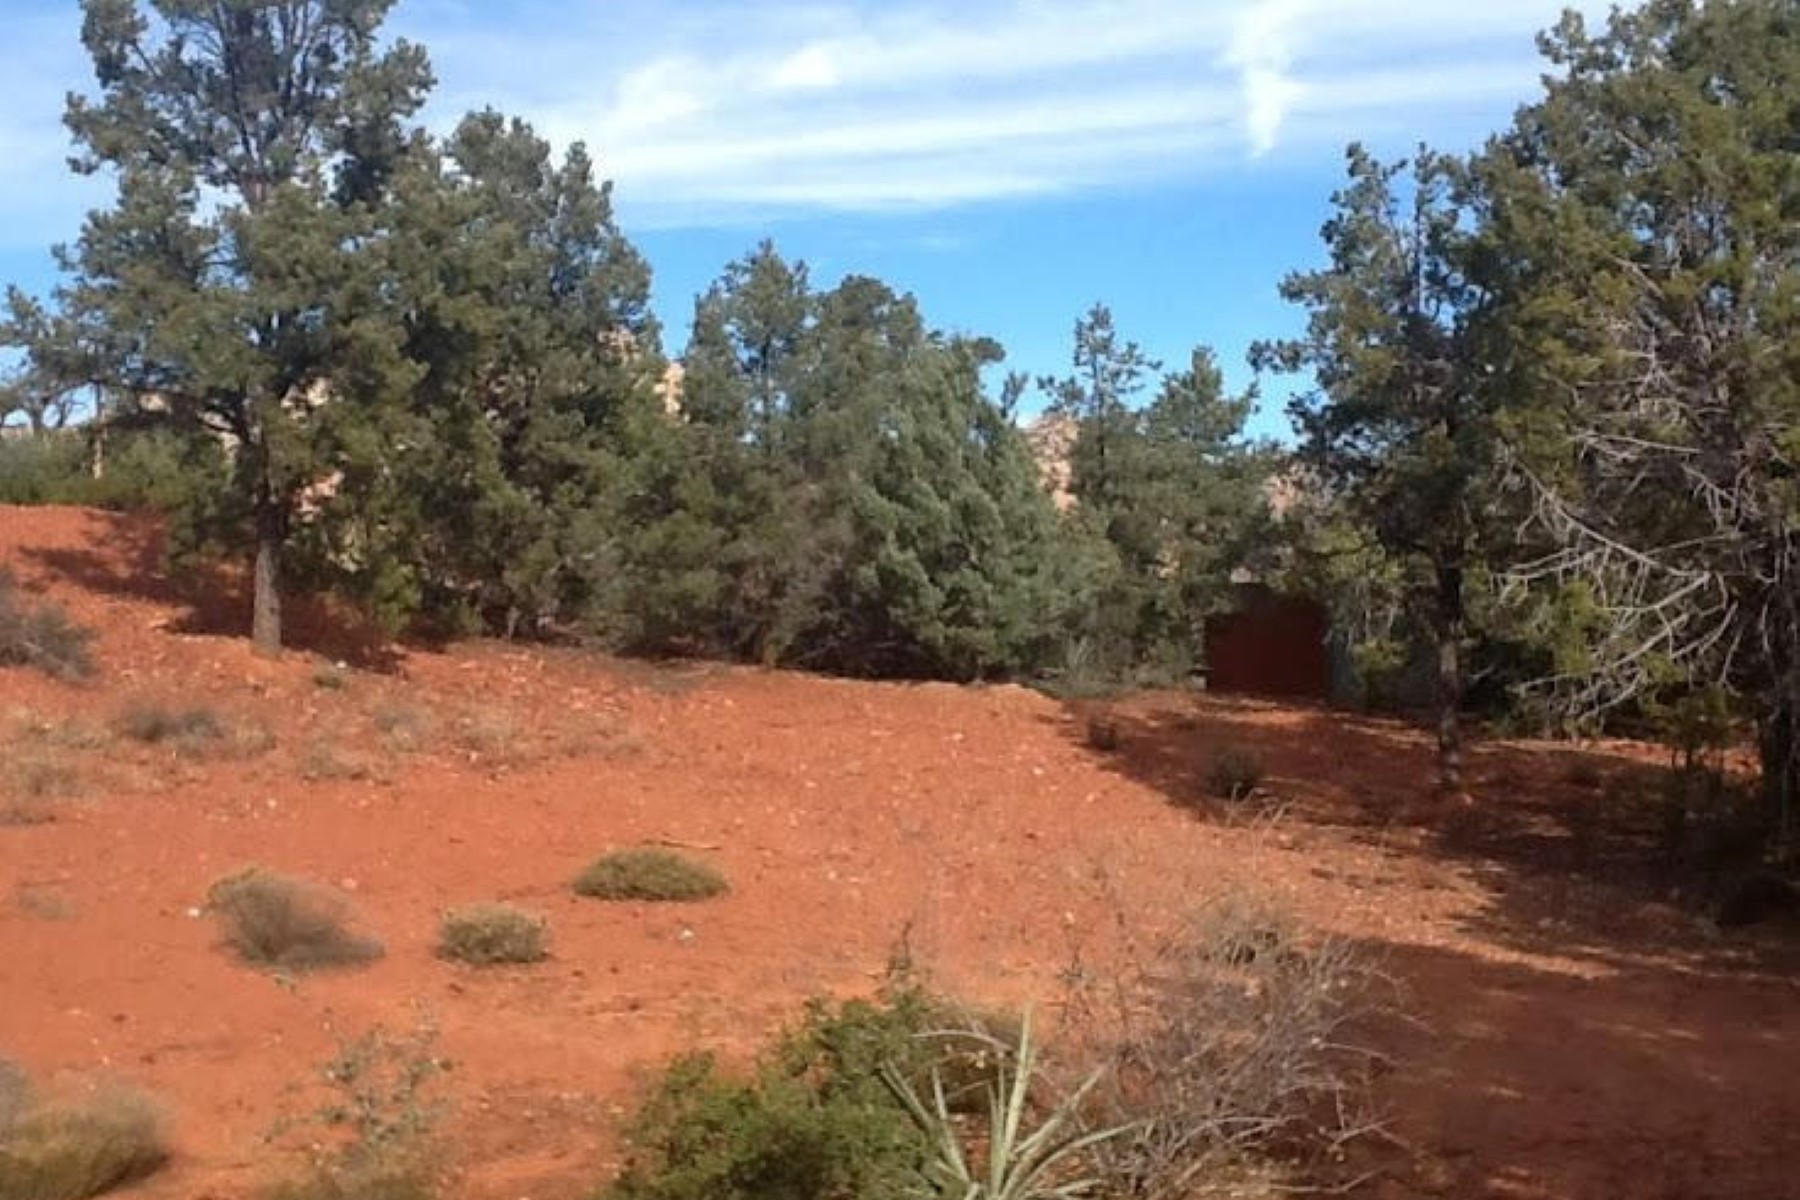 Land for Sale at Centrally located in West Sedona on 0.19ac cornet lot. 2390 Roadrunner Rd Sedona, Arizona, 86336 United States